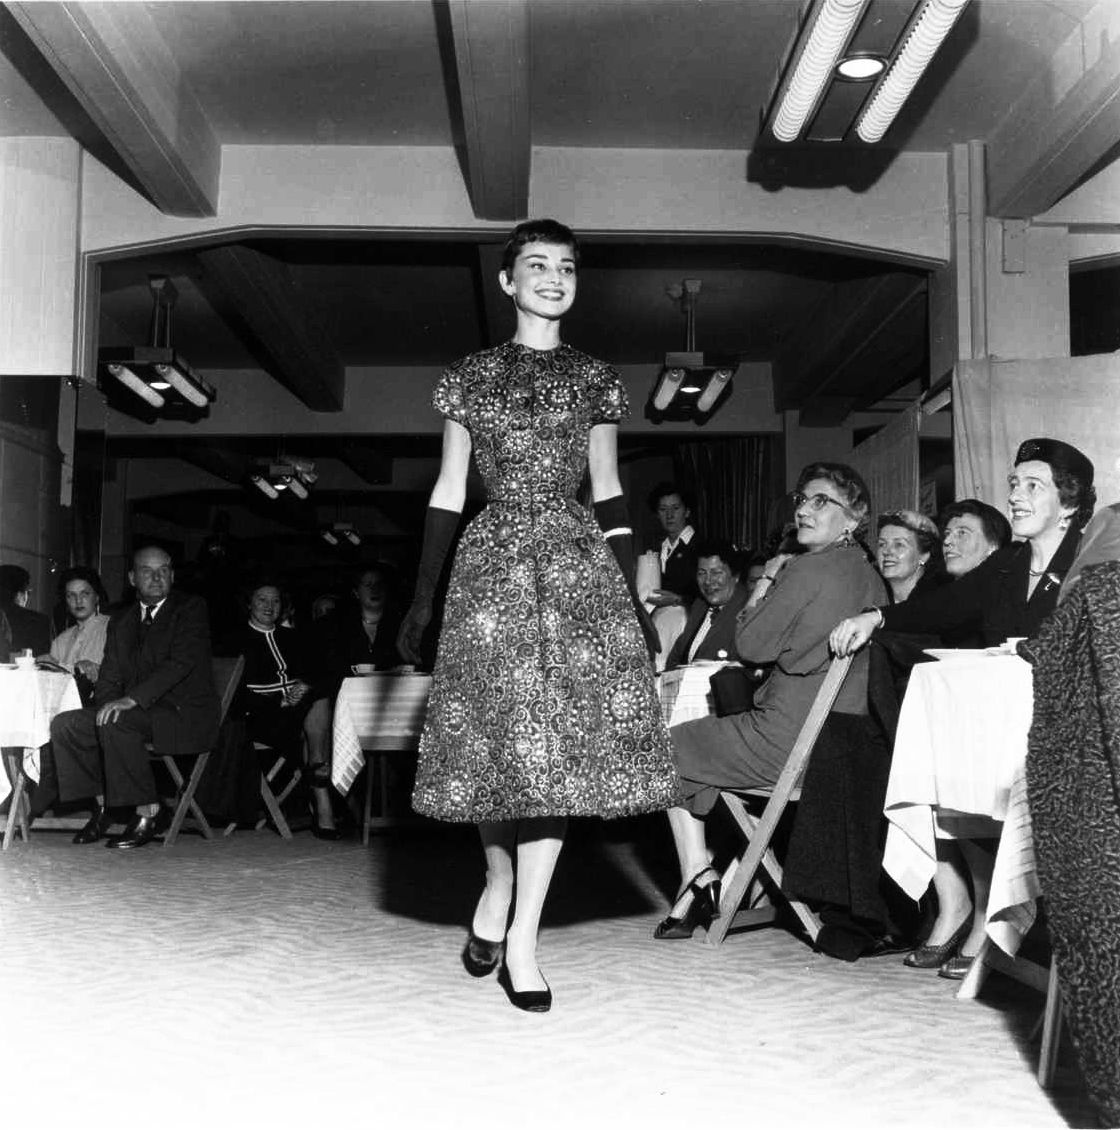 Audrey Hepburn modeling in a charity fashion show at Gerzon Kalverstraat, Amsterdam, November 2, 1954. The fashion show benefited the Joint Military Funds of Shop Gerzon Kalverstraat.